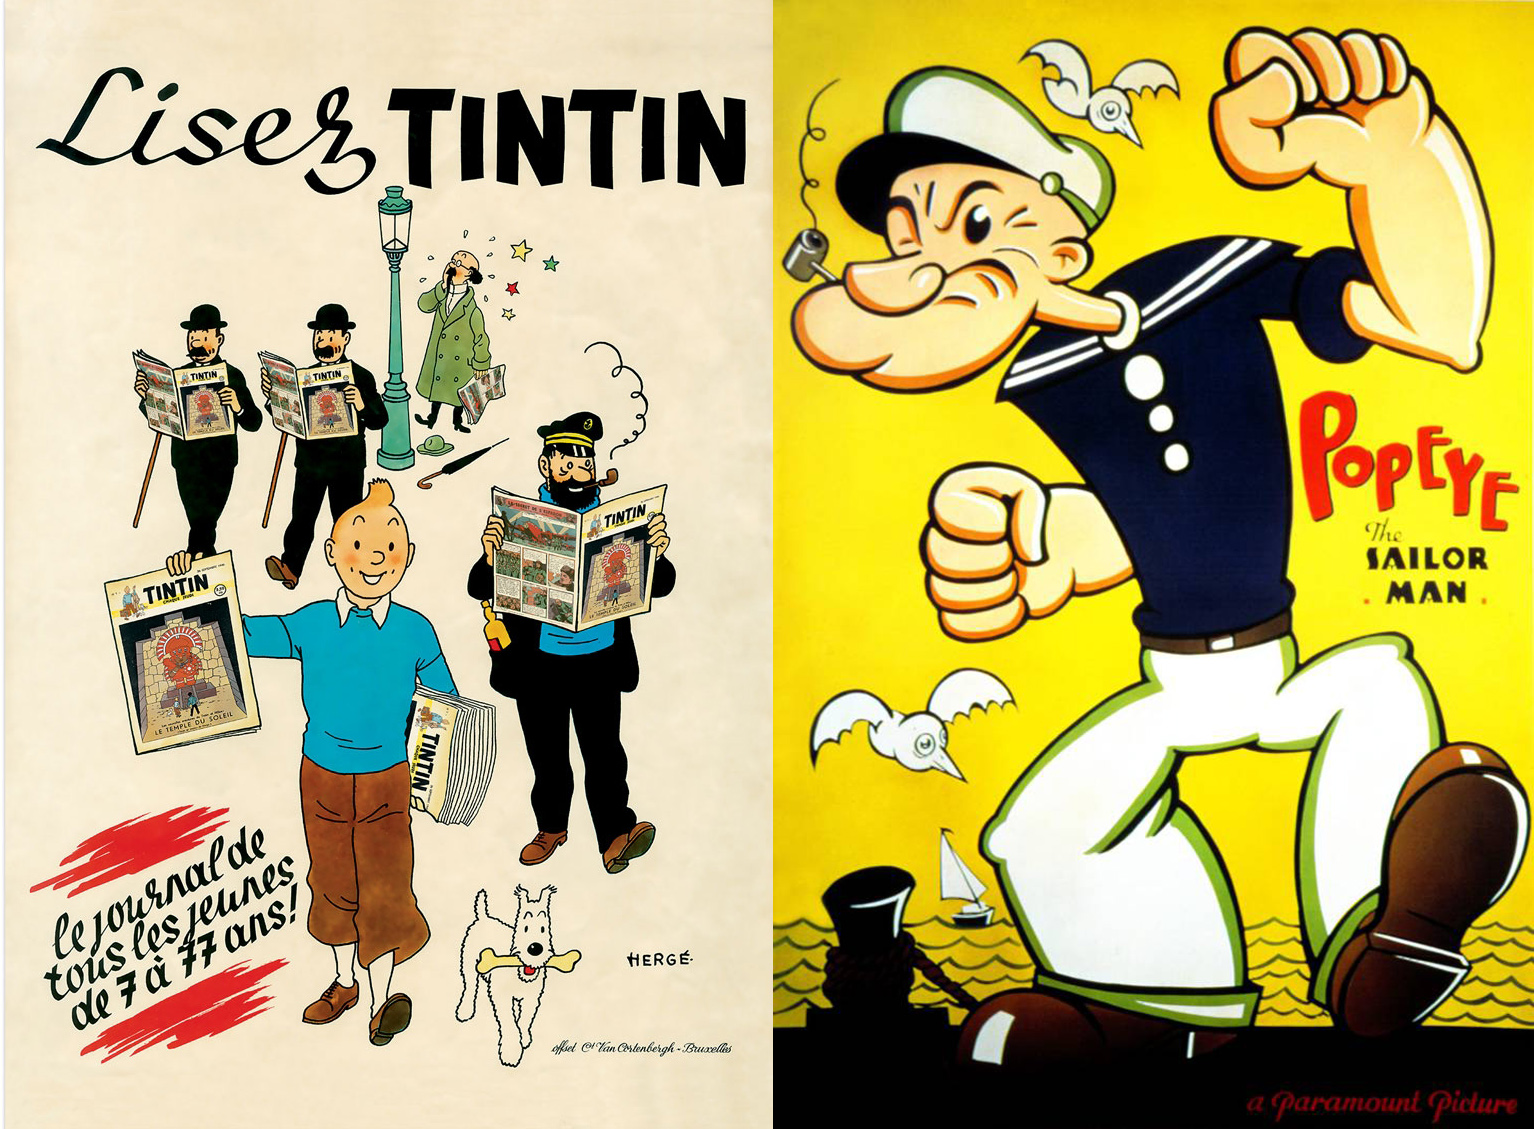 POPEYE-TINTIN-TURNING-90-AND-FABULOUS-CARTOON-ANNIVERSARY